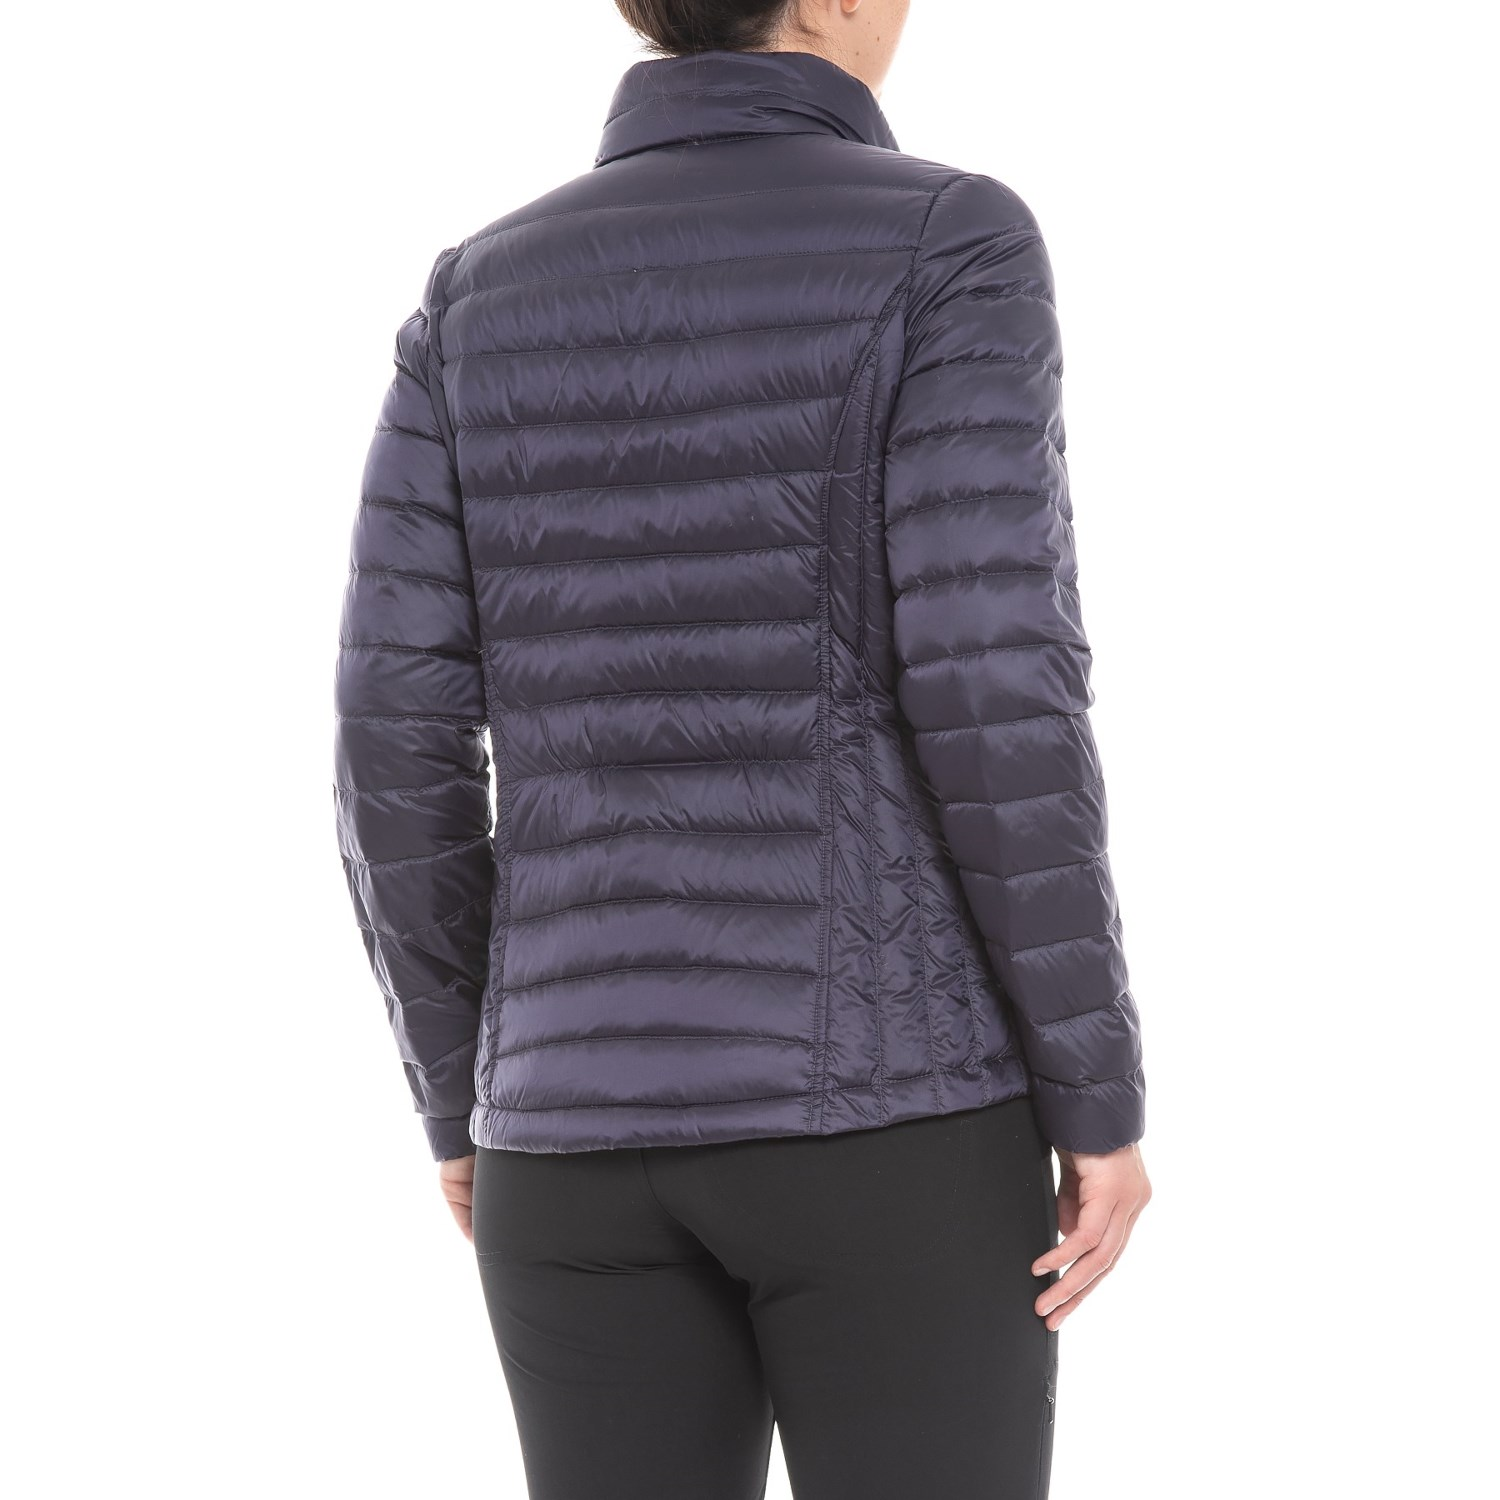 e037468b504b1 32 Degrees Short Packable Down Jacket (For Women) - Save 42%